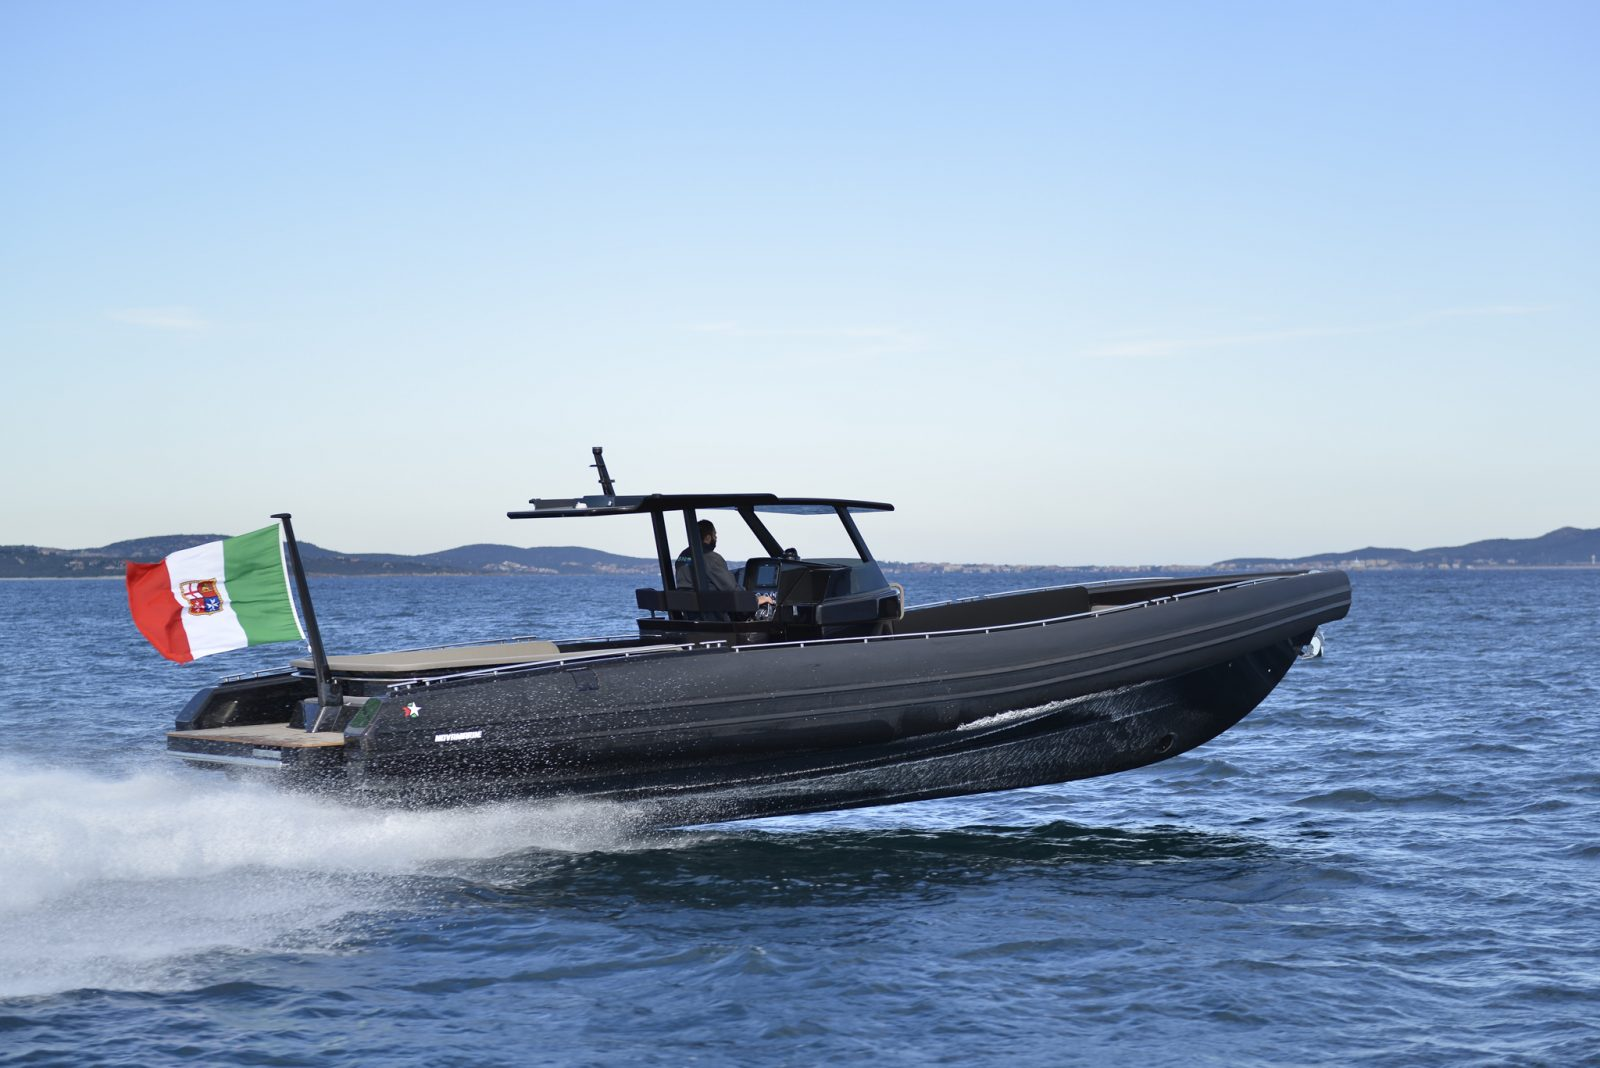 Luxury yacht for Sale or Charter | Black Shiver 120 (New) w/ Diesel Inboards by Novamarine